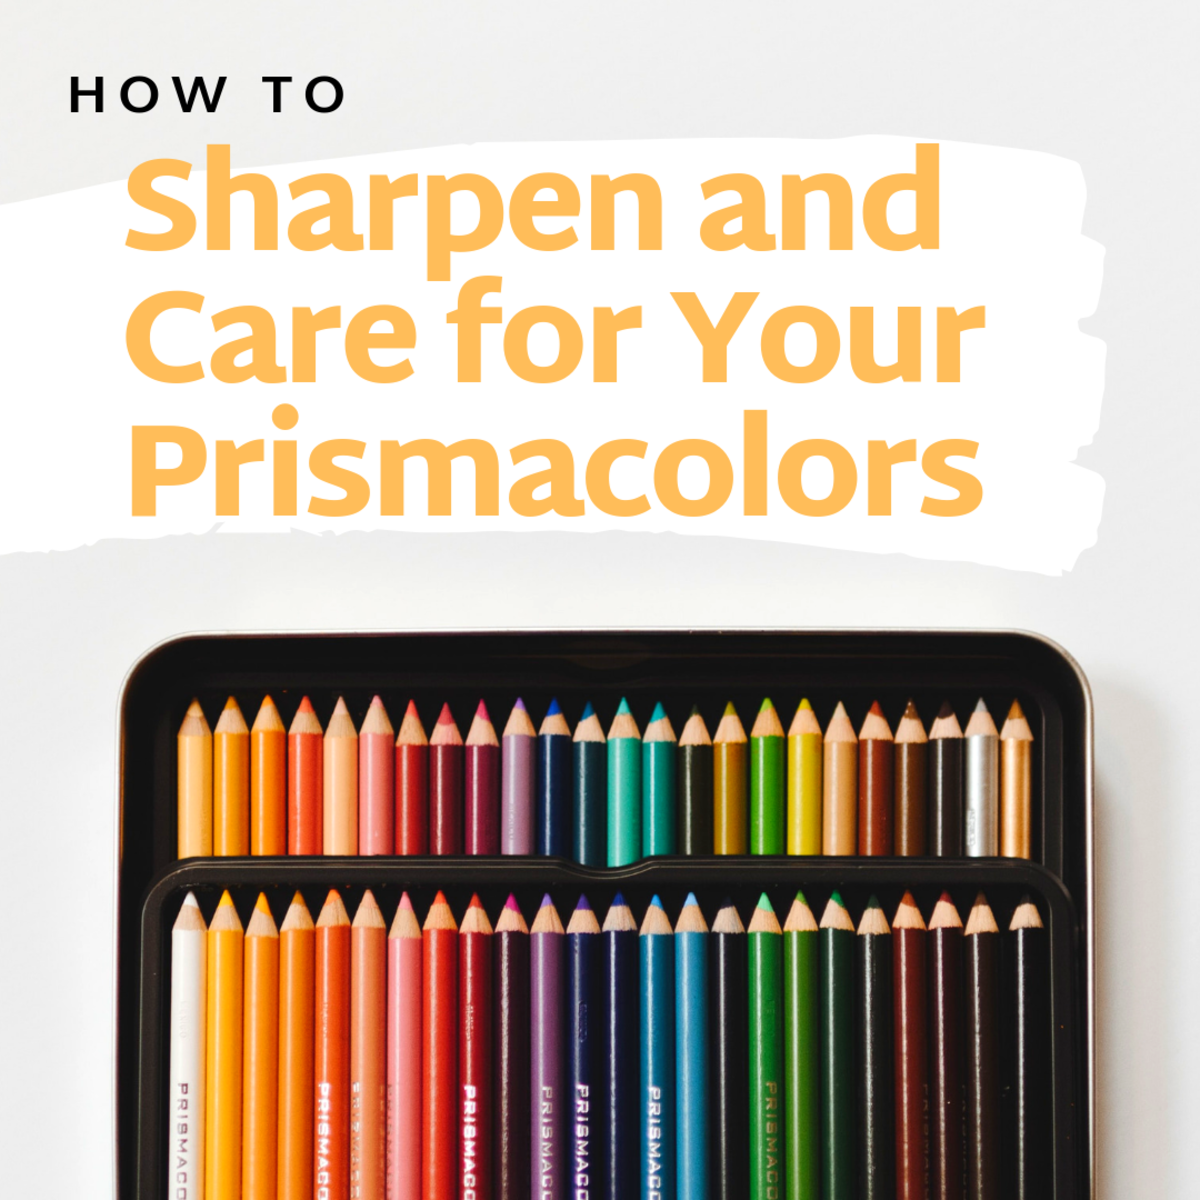 How to Sharpen Prismacolor Pencils